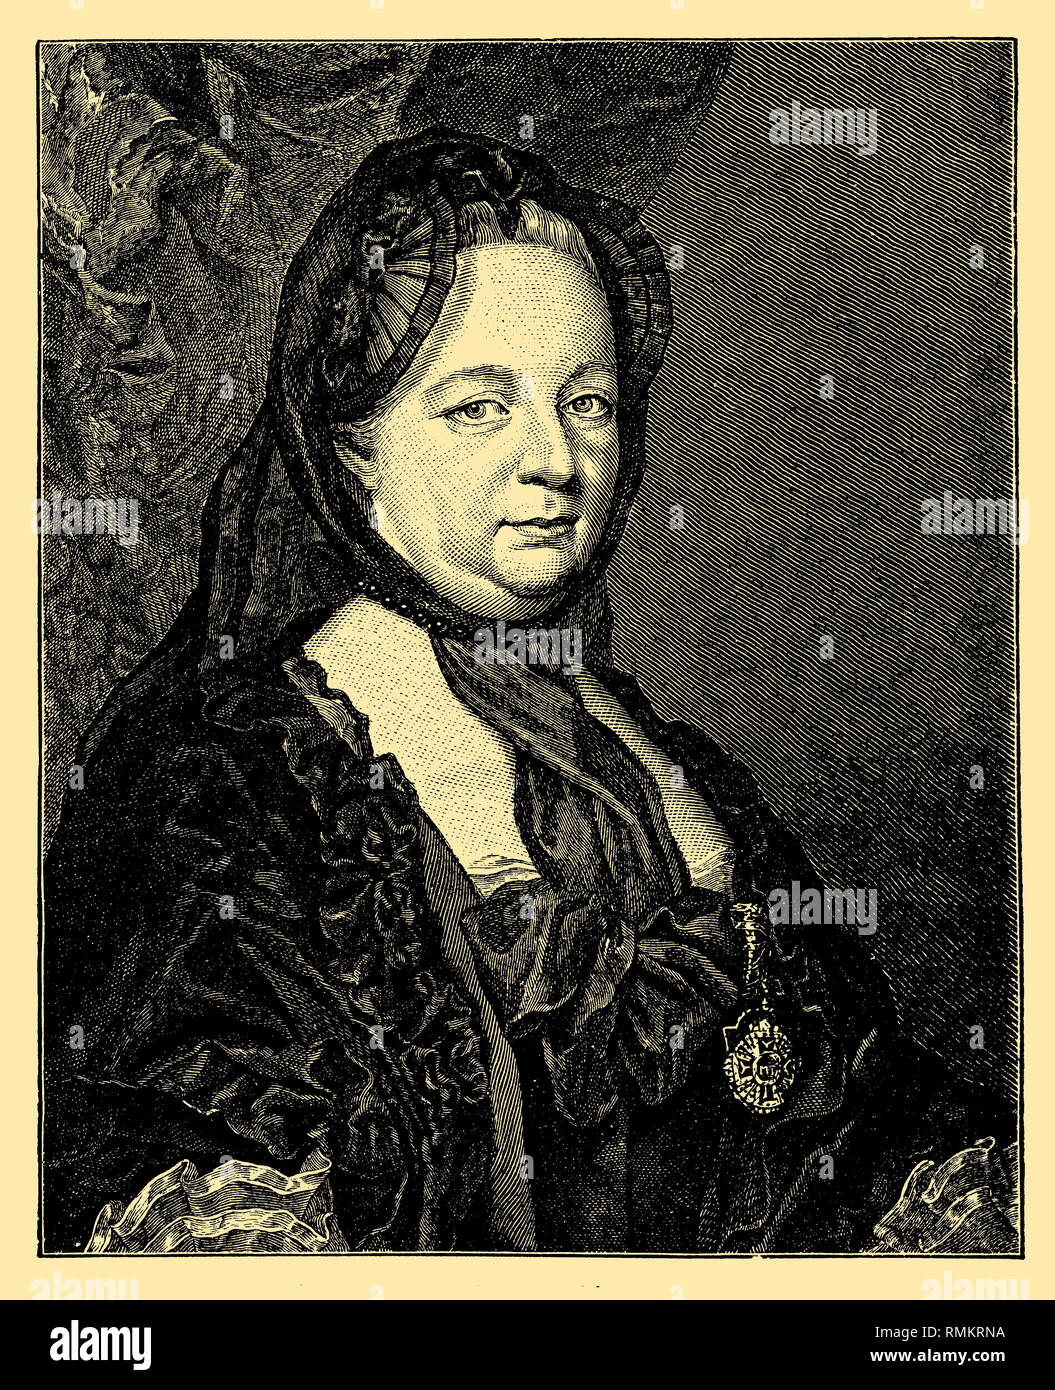 Maria Theresa of Austria  Princess of the House of Habsburg, Queen of Hungary and Bohemia and Archduchess of Austria, in widow's grief. Portrait from the year 177 ?. Painted by the court painter du Greue, engraved by K. K. Hofkupferstecher Jakob Schmuzer, du Greue und Jakob Schmuzer  1899 - Stock Image